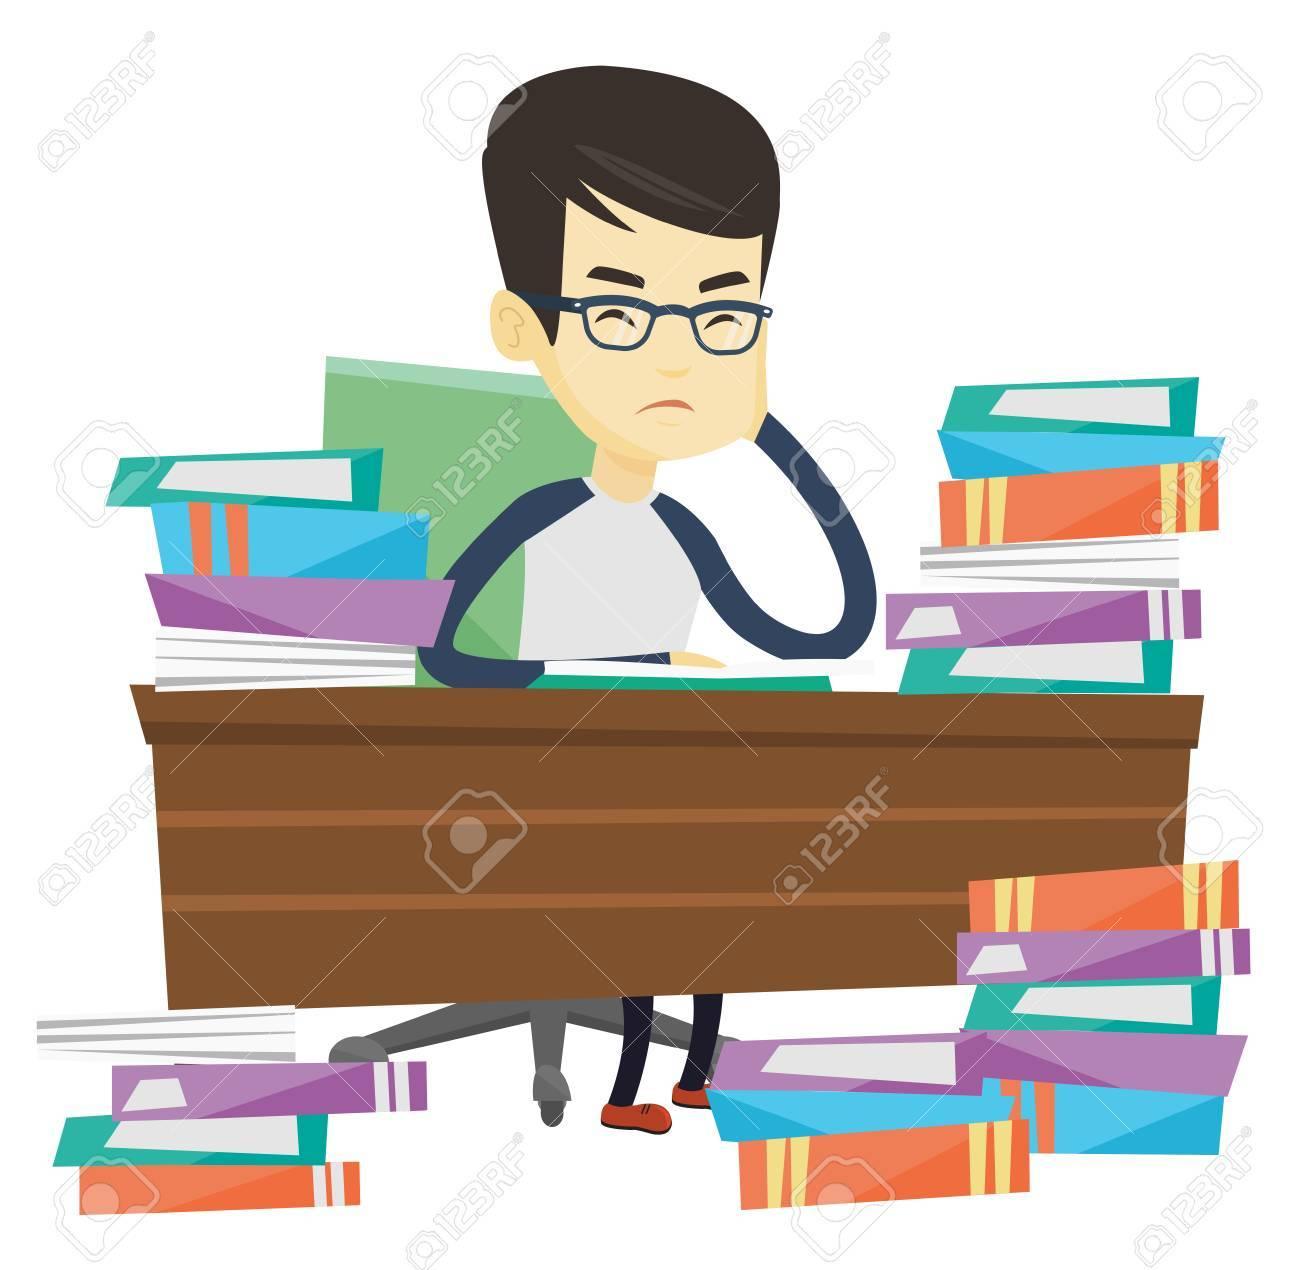 Annoyed clipartuse asian studying. Anger clipart angry student